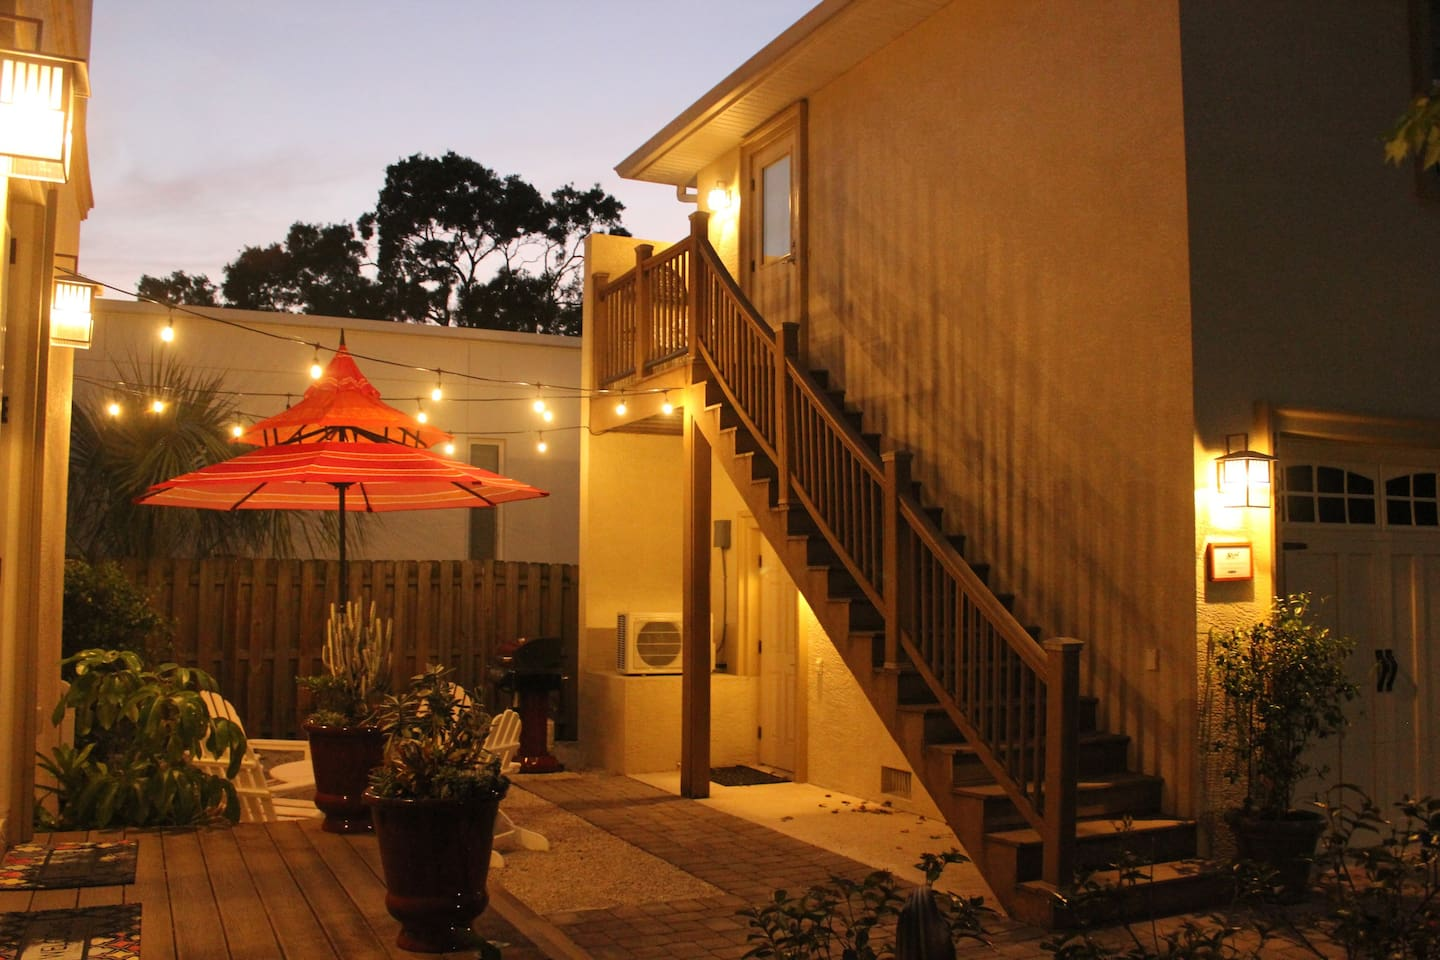 Welcome to your base camp for exploring Sarasota